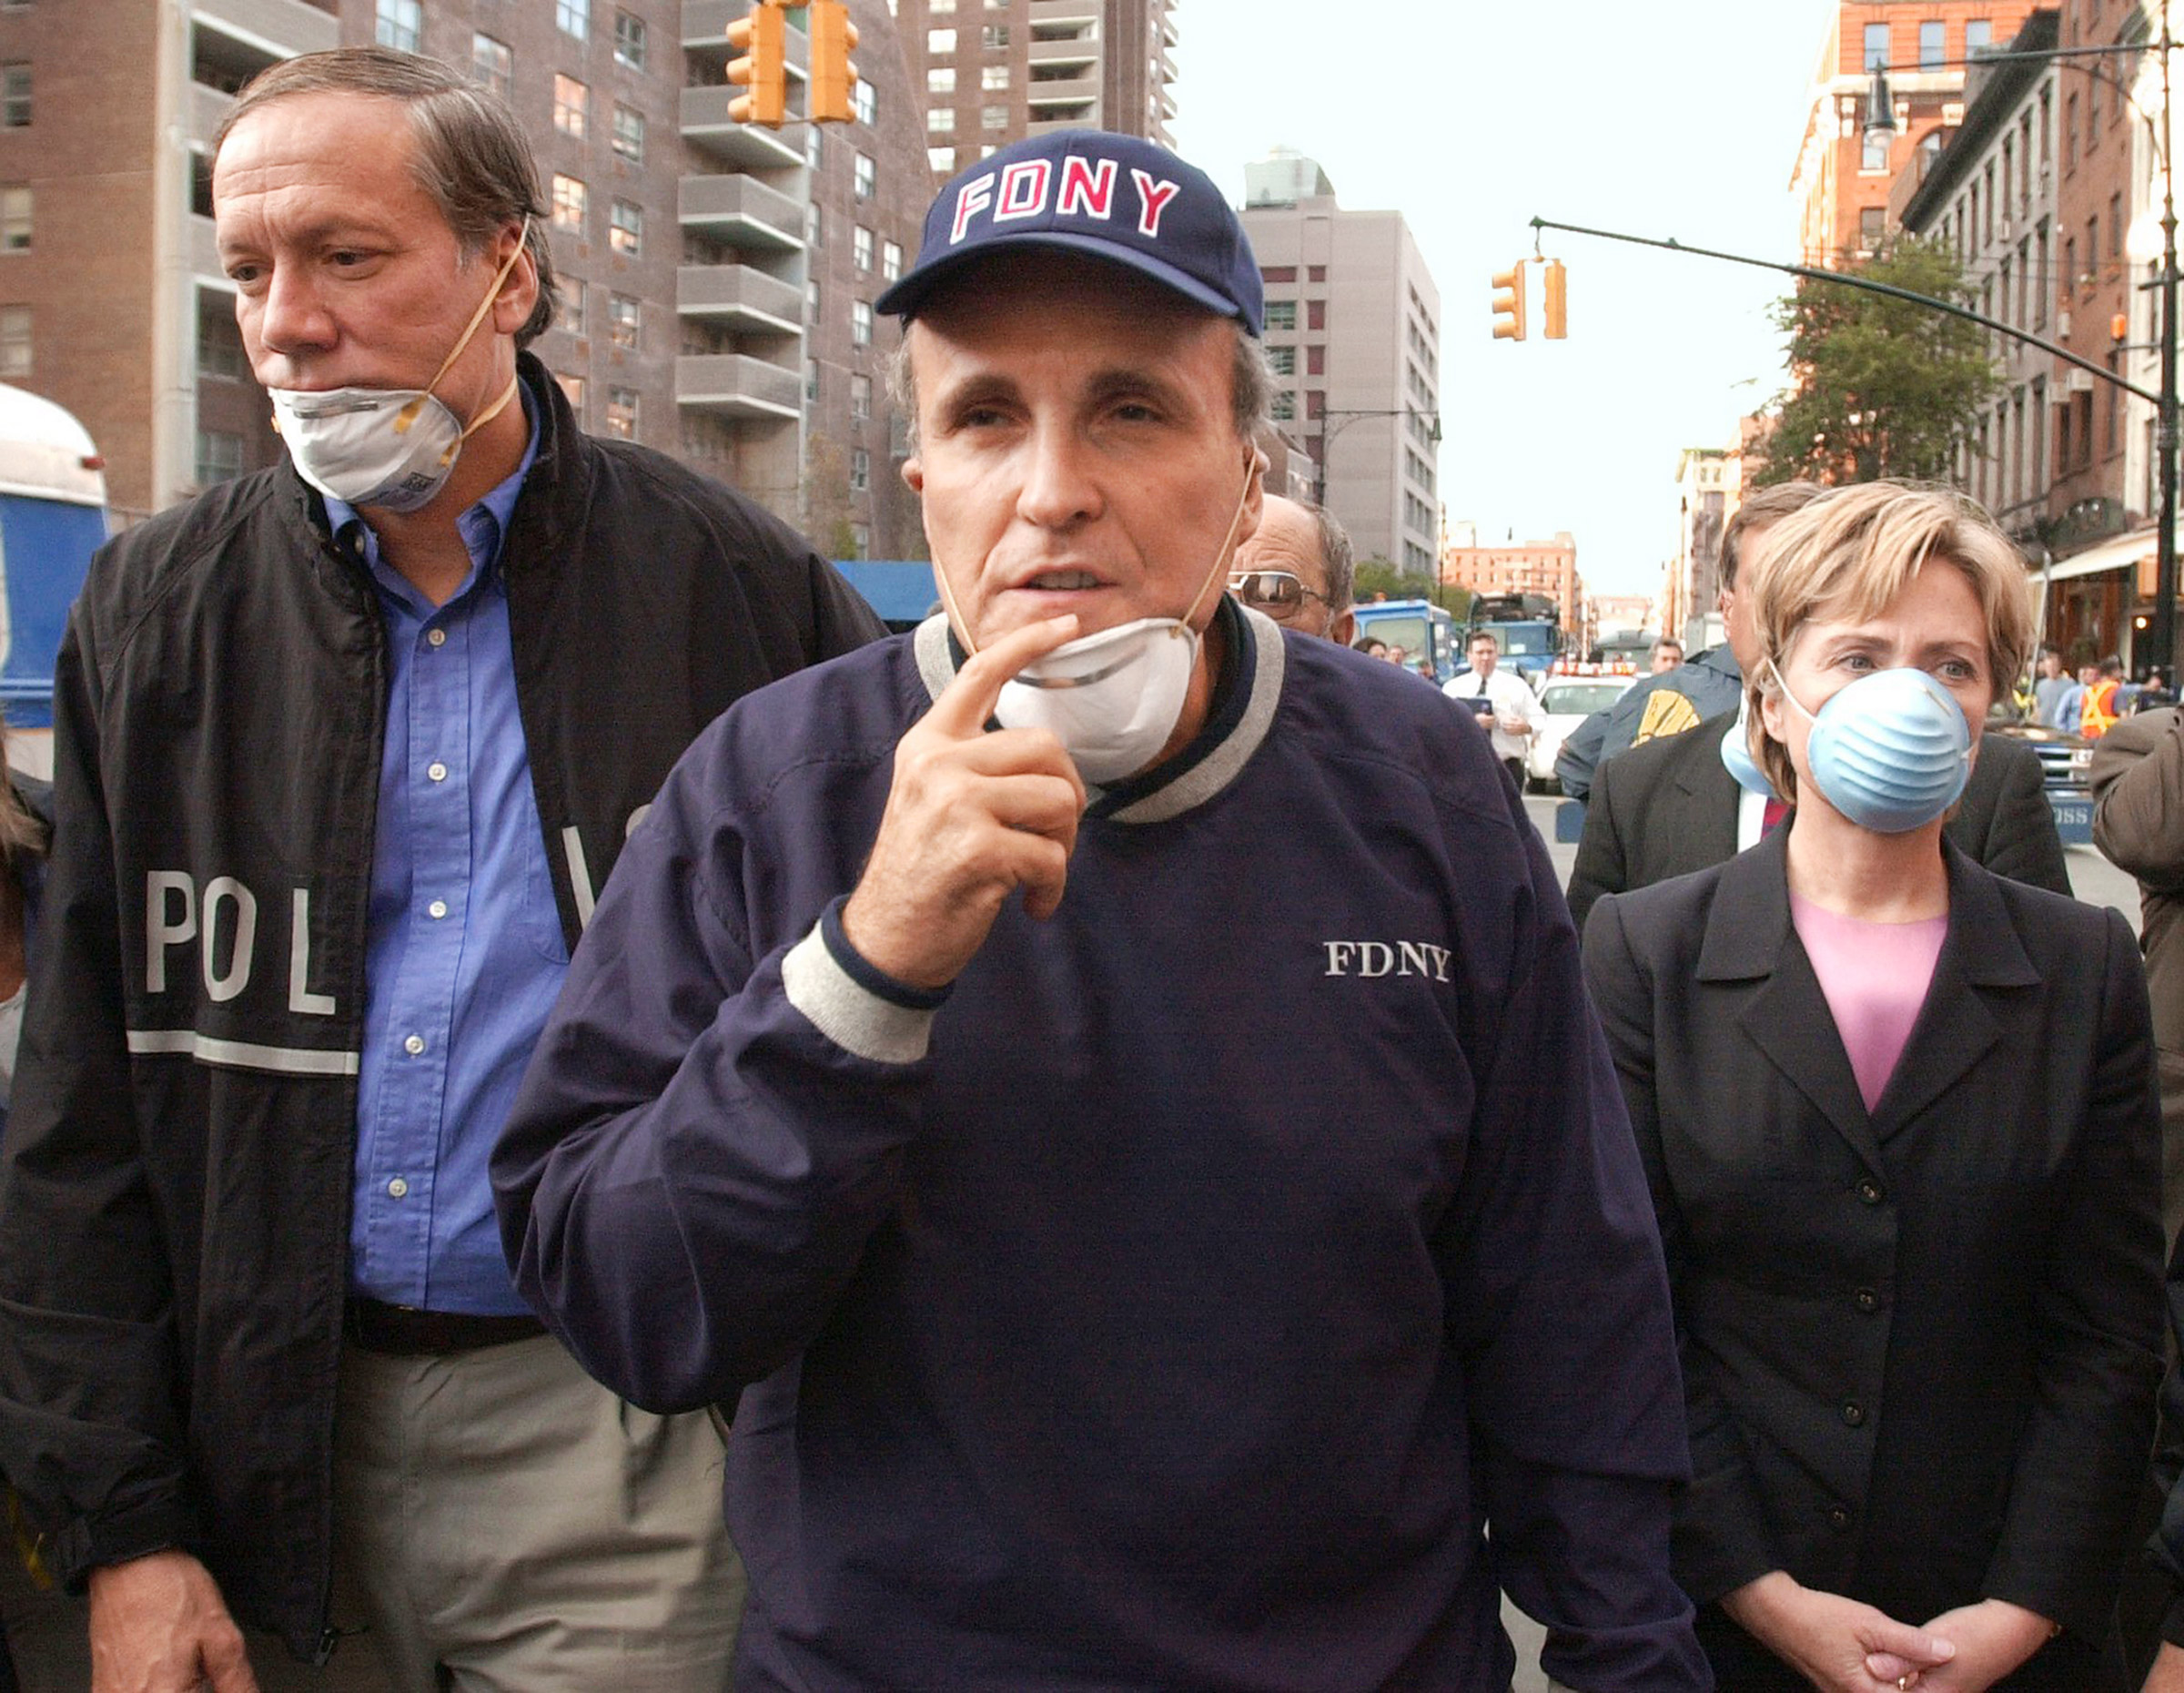 Giuliani became a figure of resilience after the Sept. 11 attacks